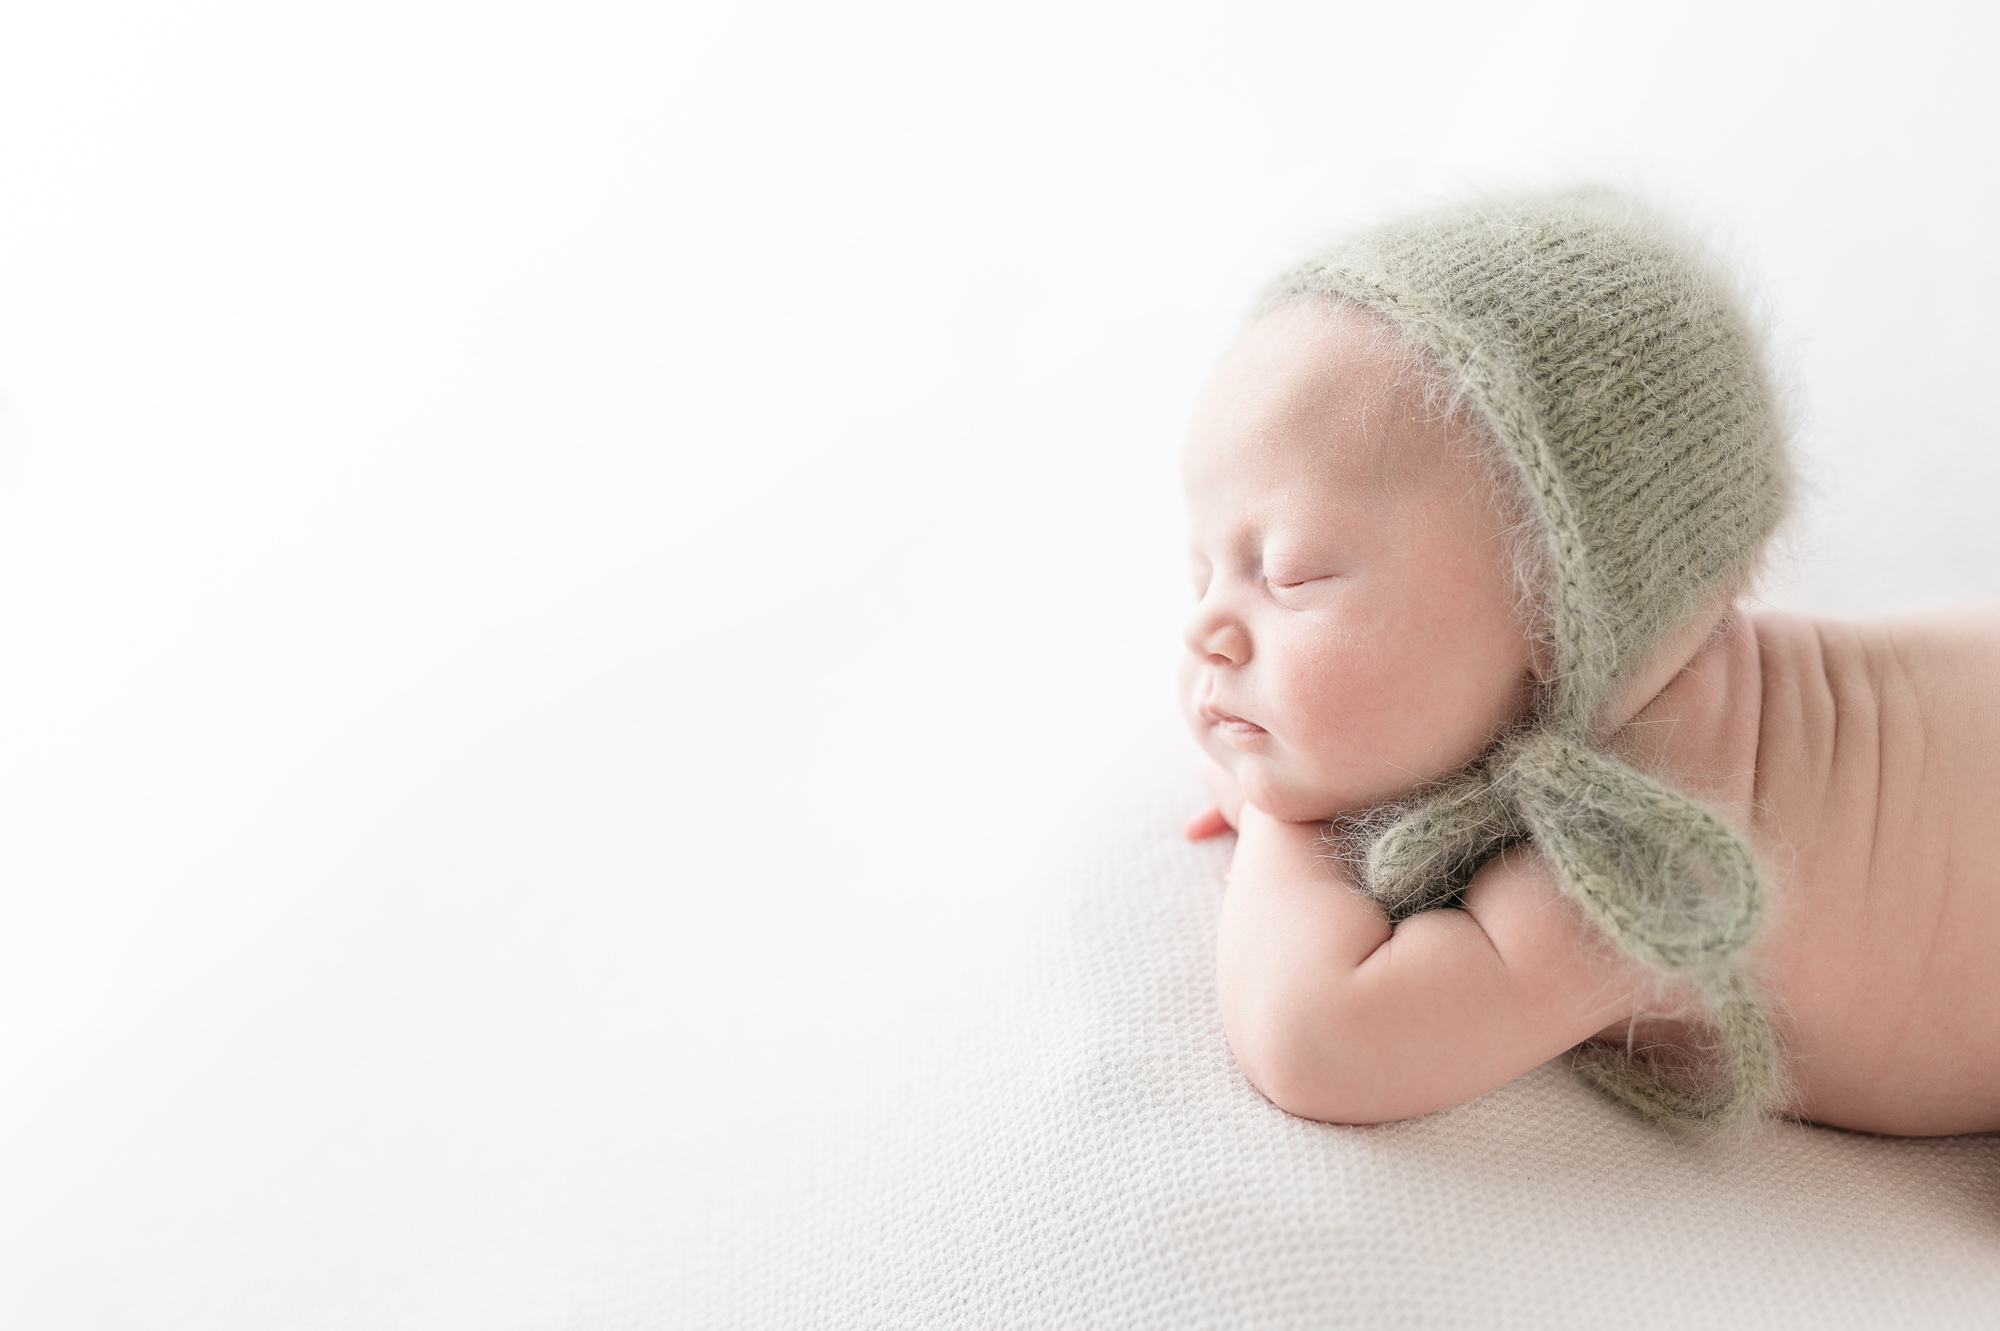 Posed baby girl in knit bonnet during studio newborn photography session. Photo by Aimee Hamilton Photography.